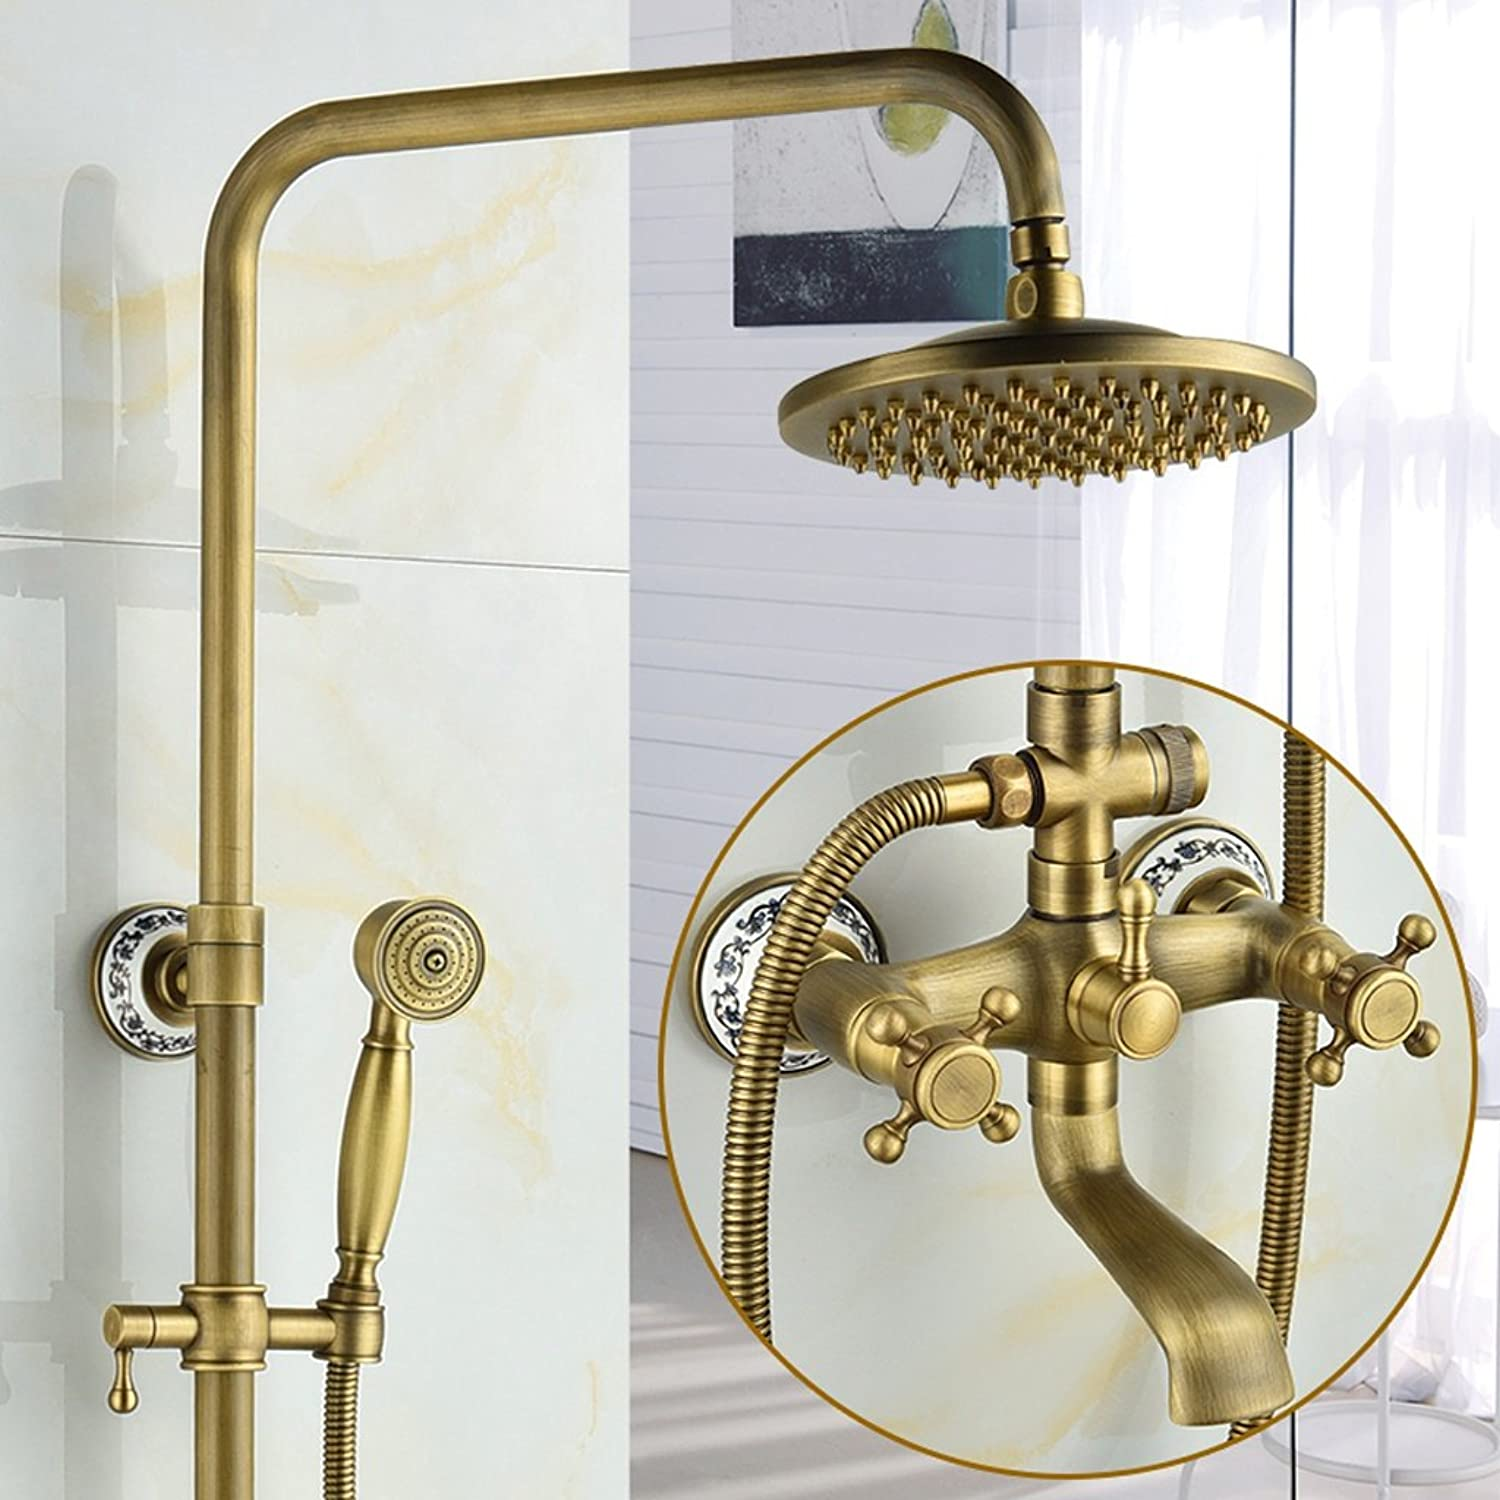 Shower set LJ European Style Retro bluee And White Porcelain All Bronze Hot And Cold Faucet Bathroom (Size   C2)